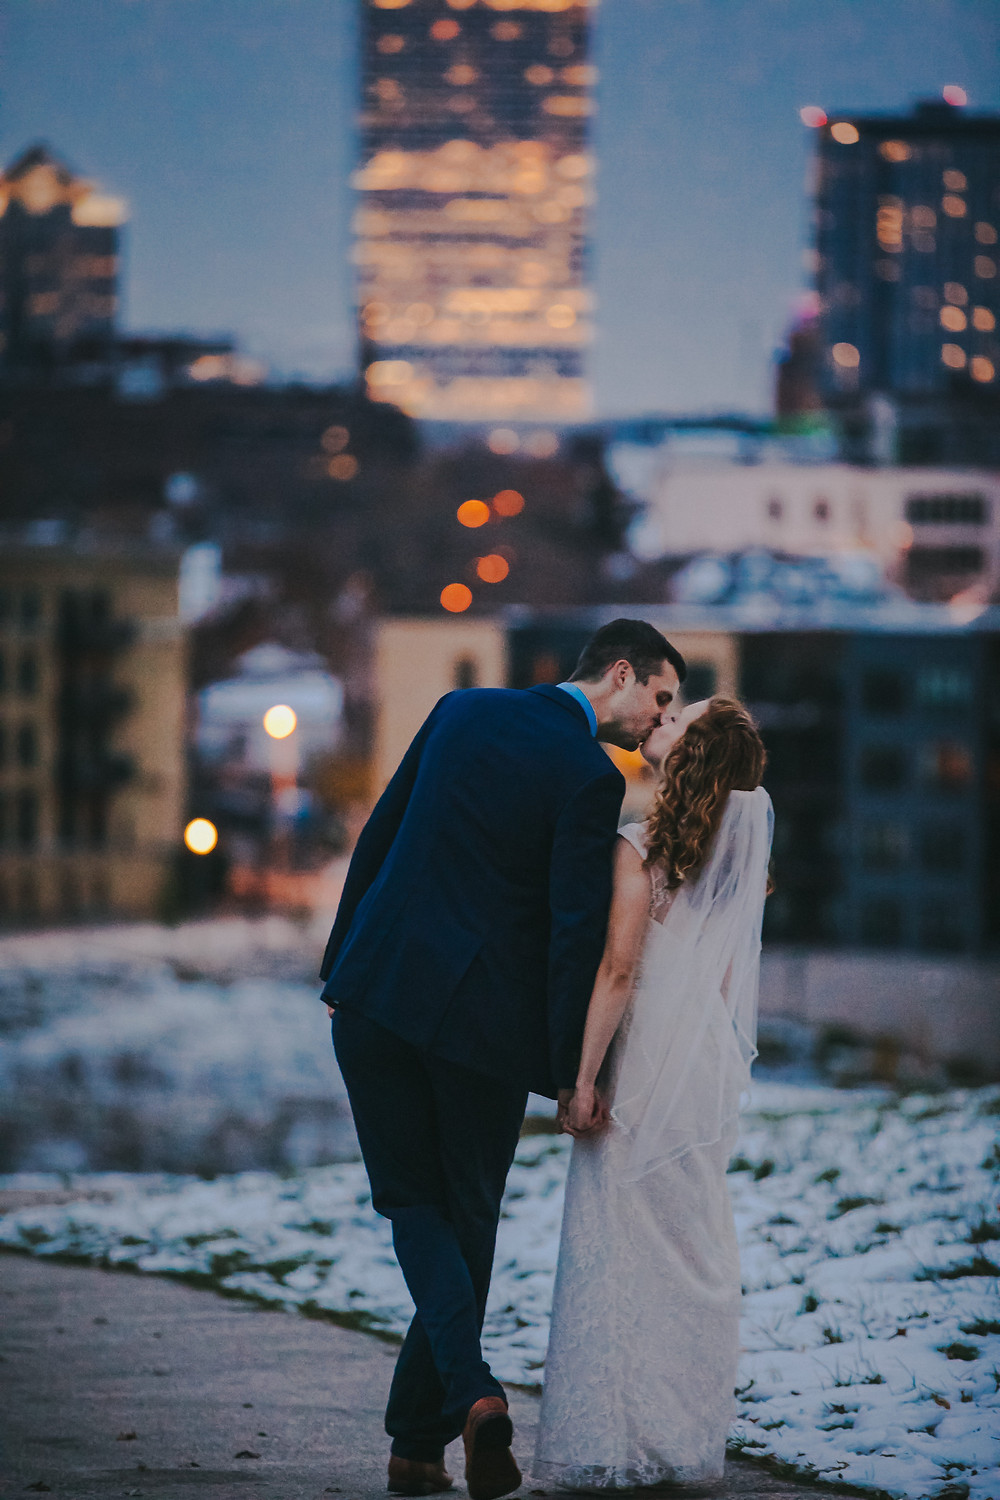 A man and woman kiss in front of the Milwaukee skyline